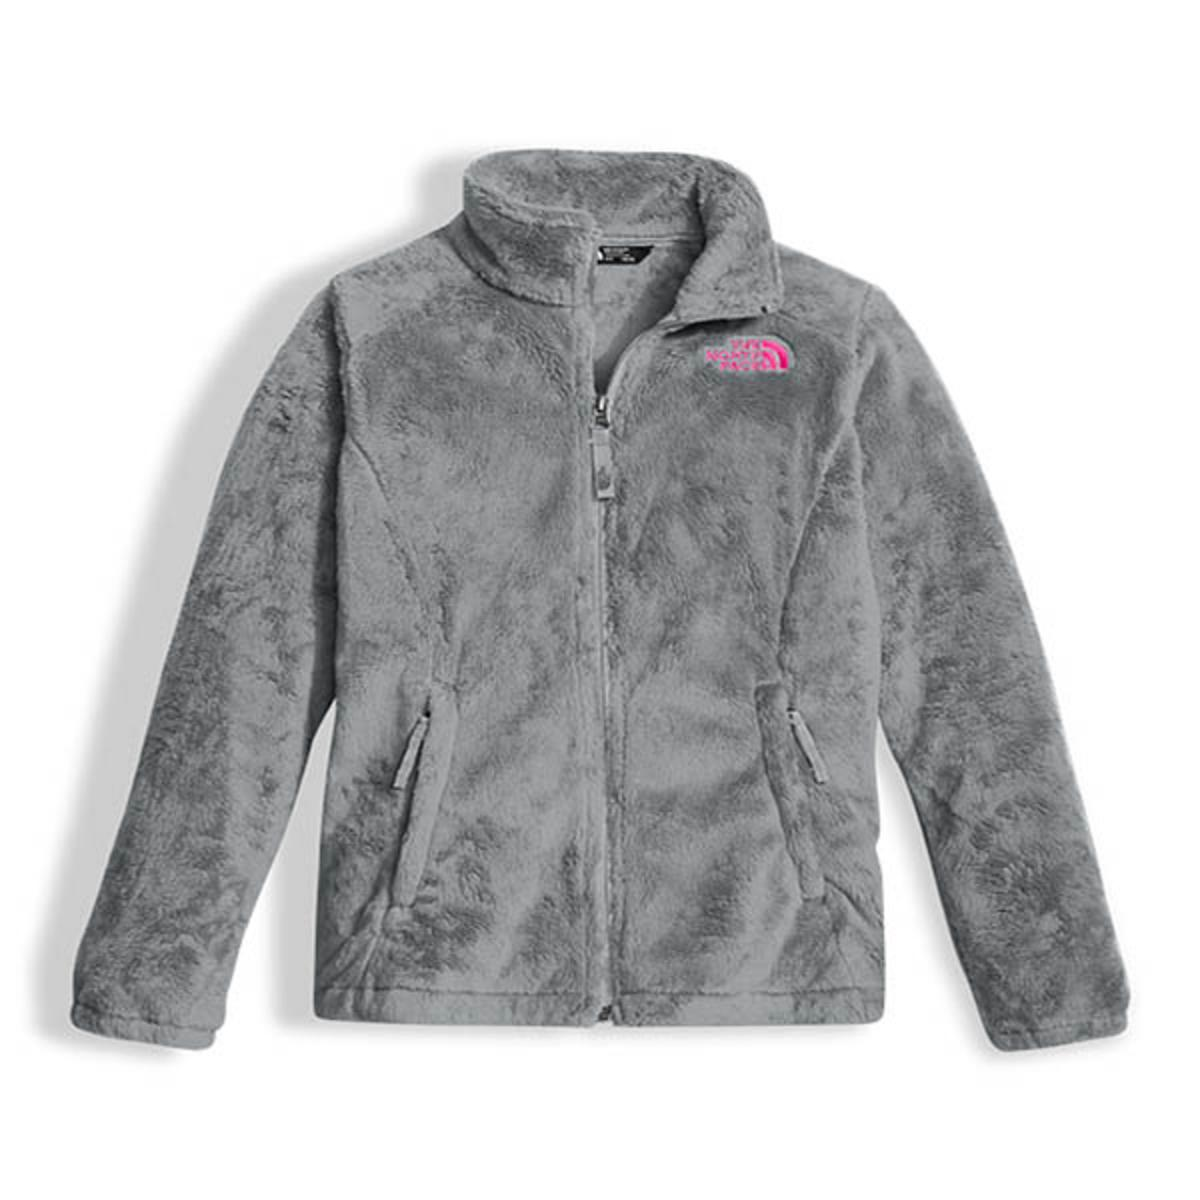 7dba437b7 The North Face Girls Osolita Jacket - The Warming Store